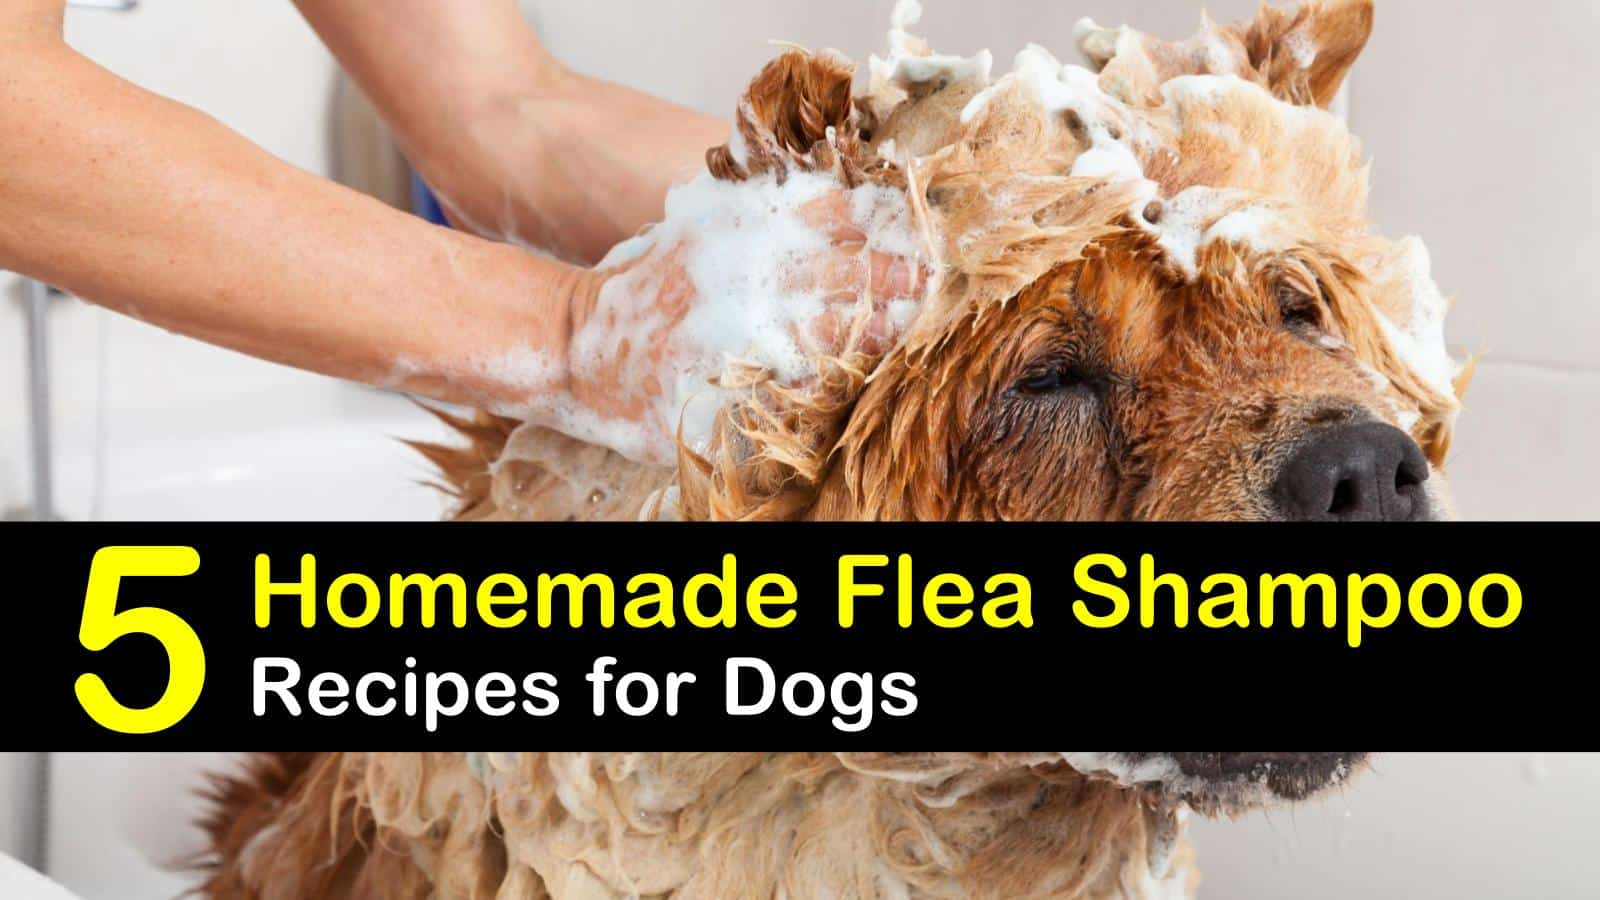 Homemade Flea Shampoo Recipes for Dogs